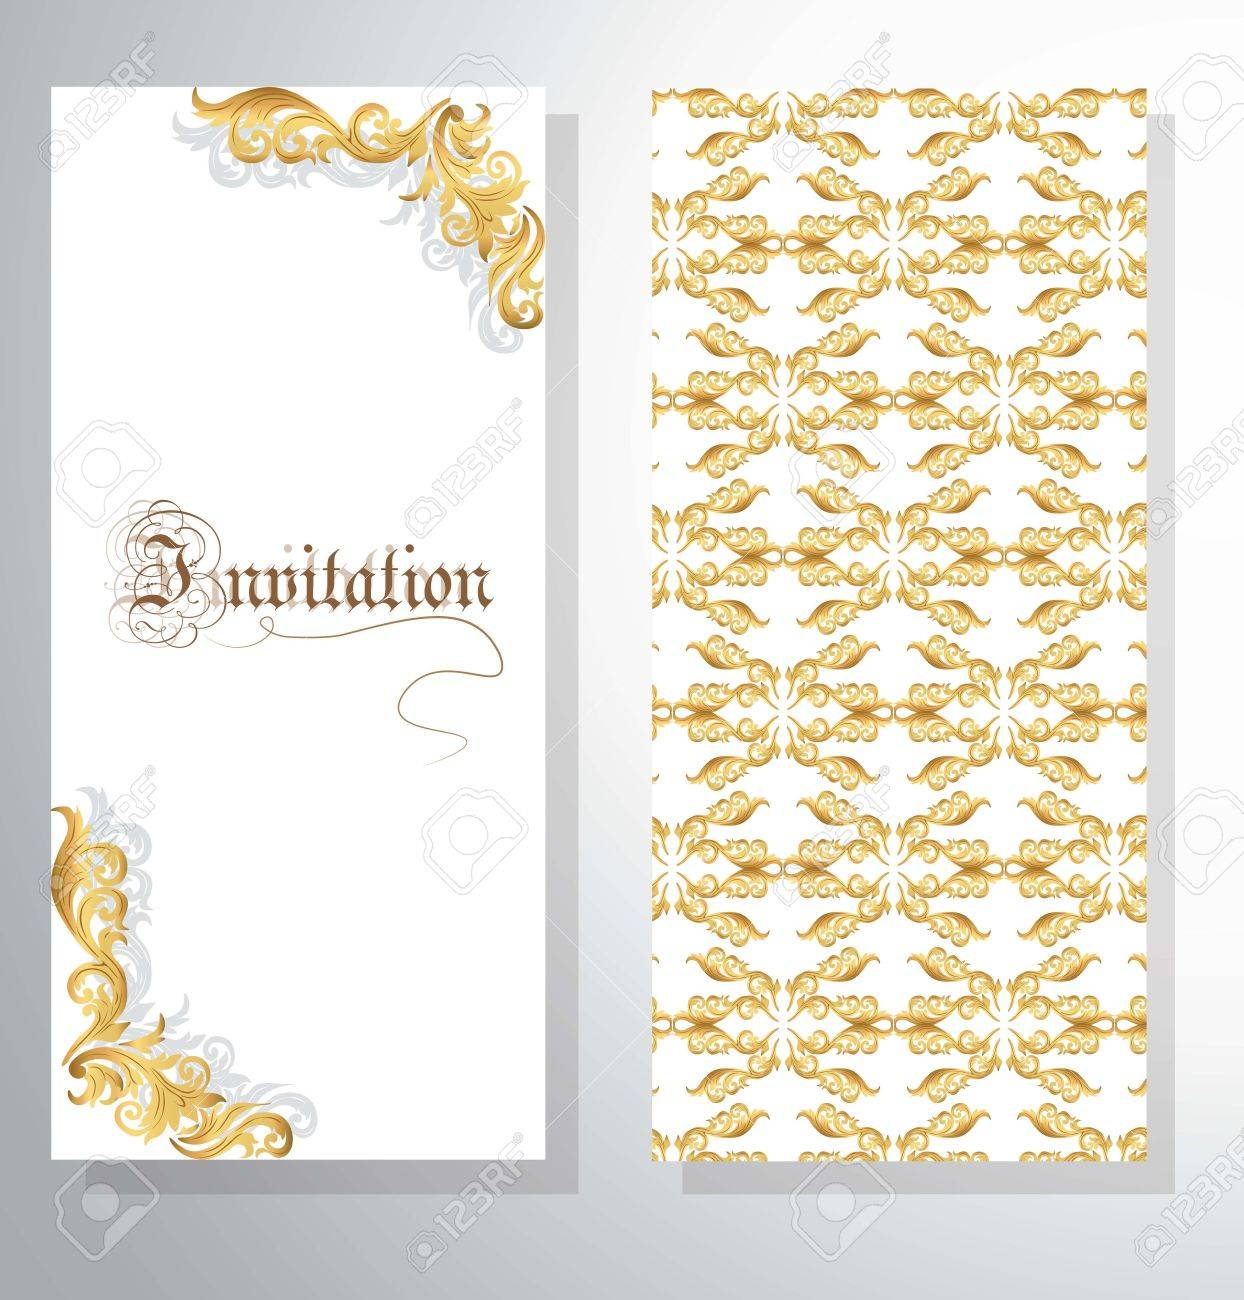 Invitation Card With Golden Ornament Pattern For Weddings Ceremonies